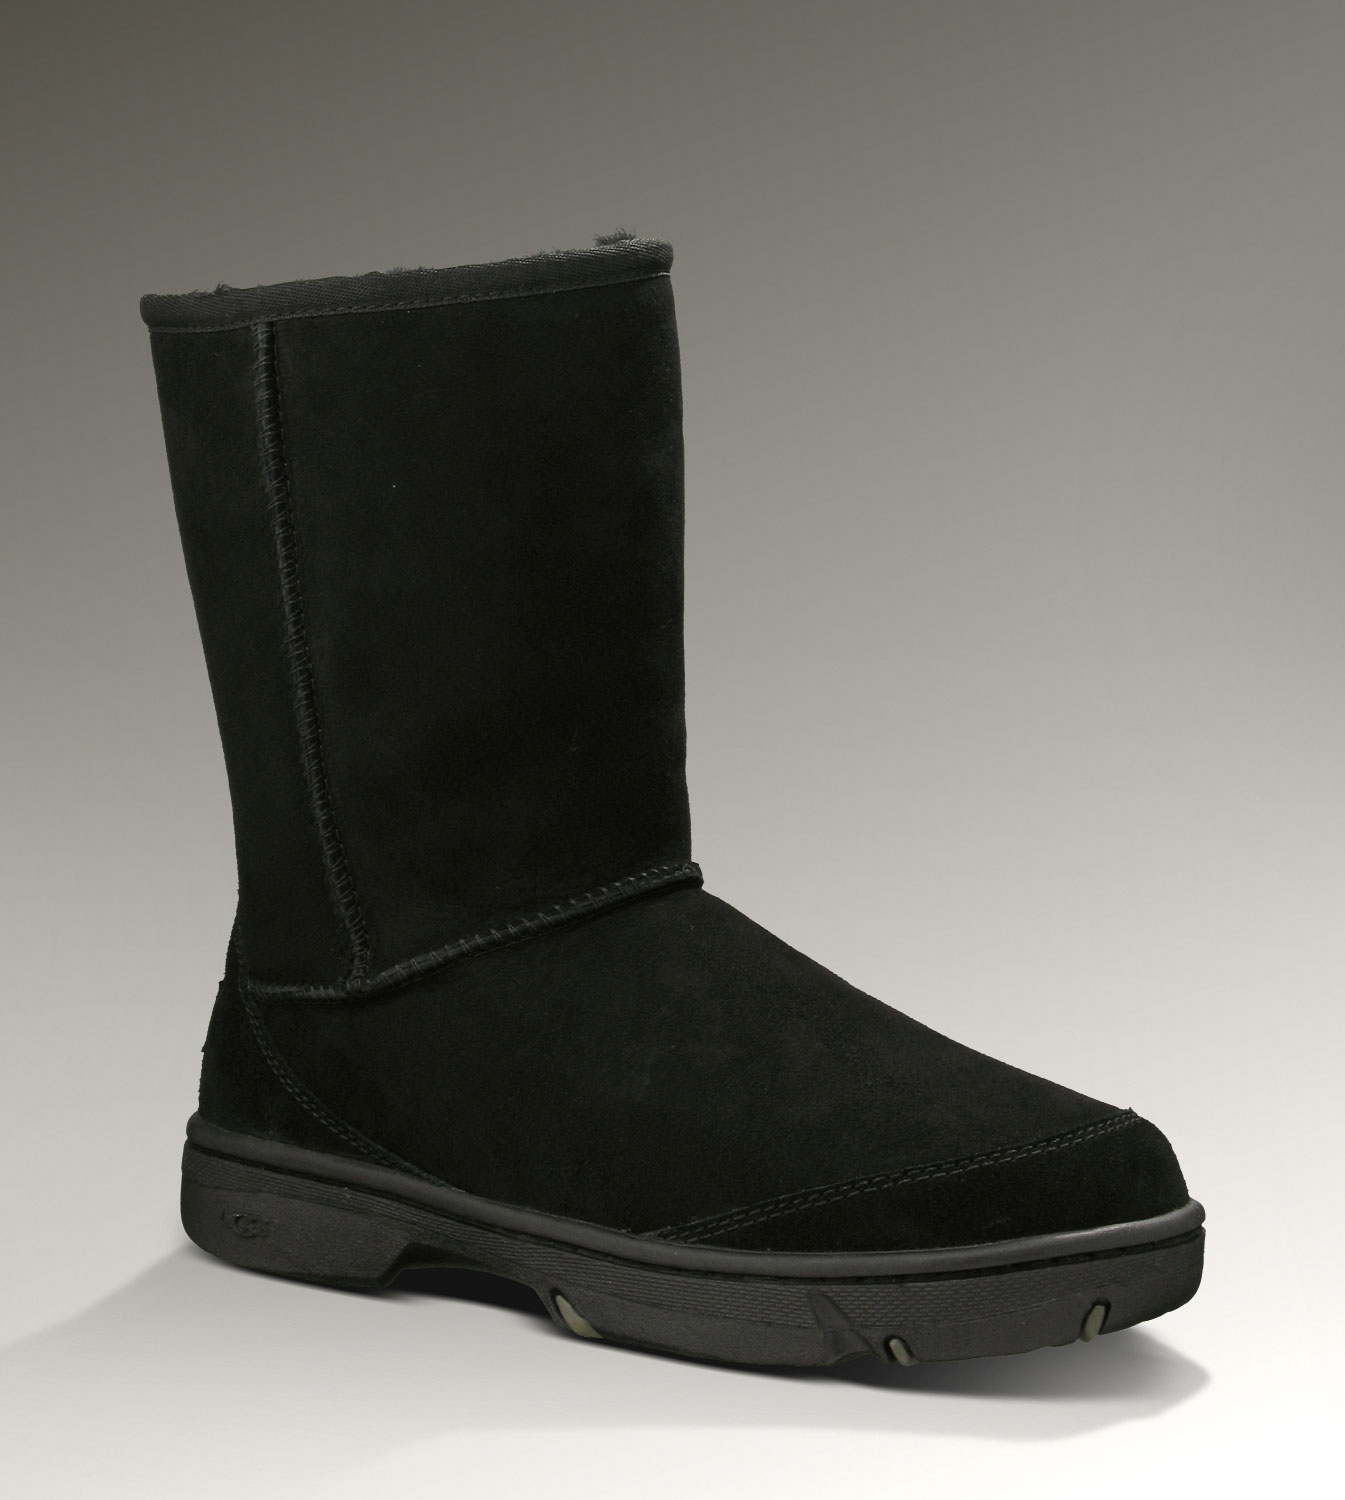 UGG Ultimate Short 5275 Black Boots